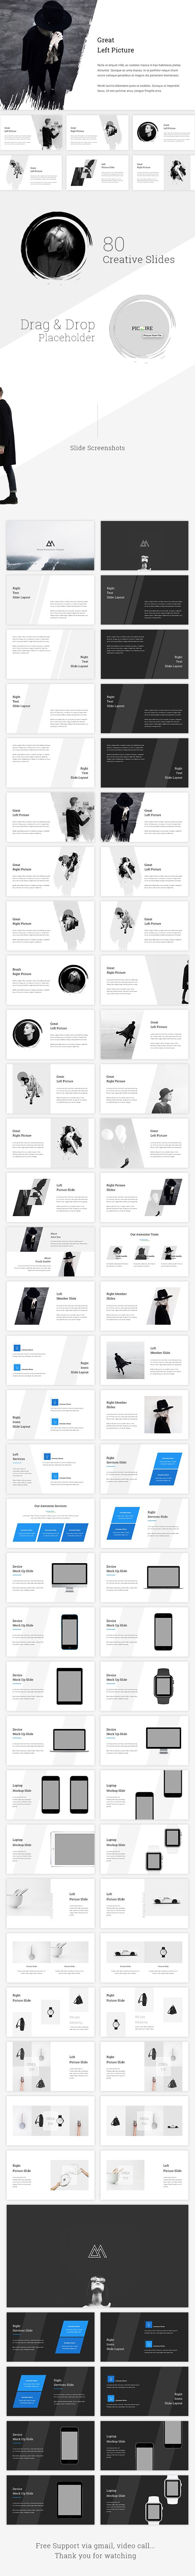 Minimal Powerpoint Template - 80 Unique Creative Slides